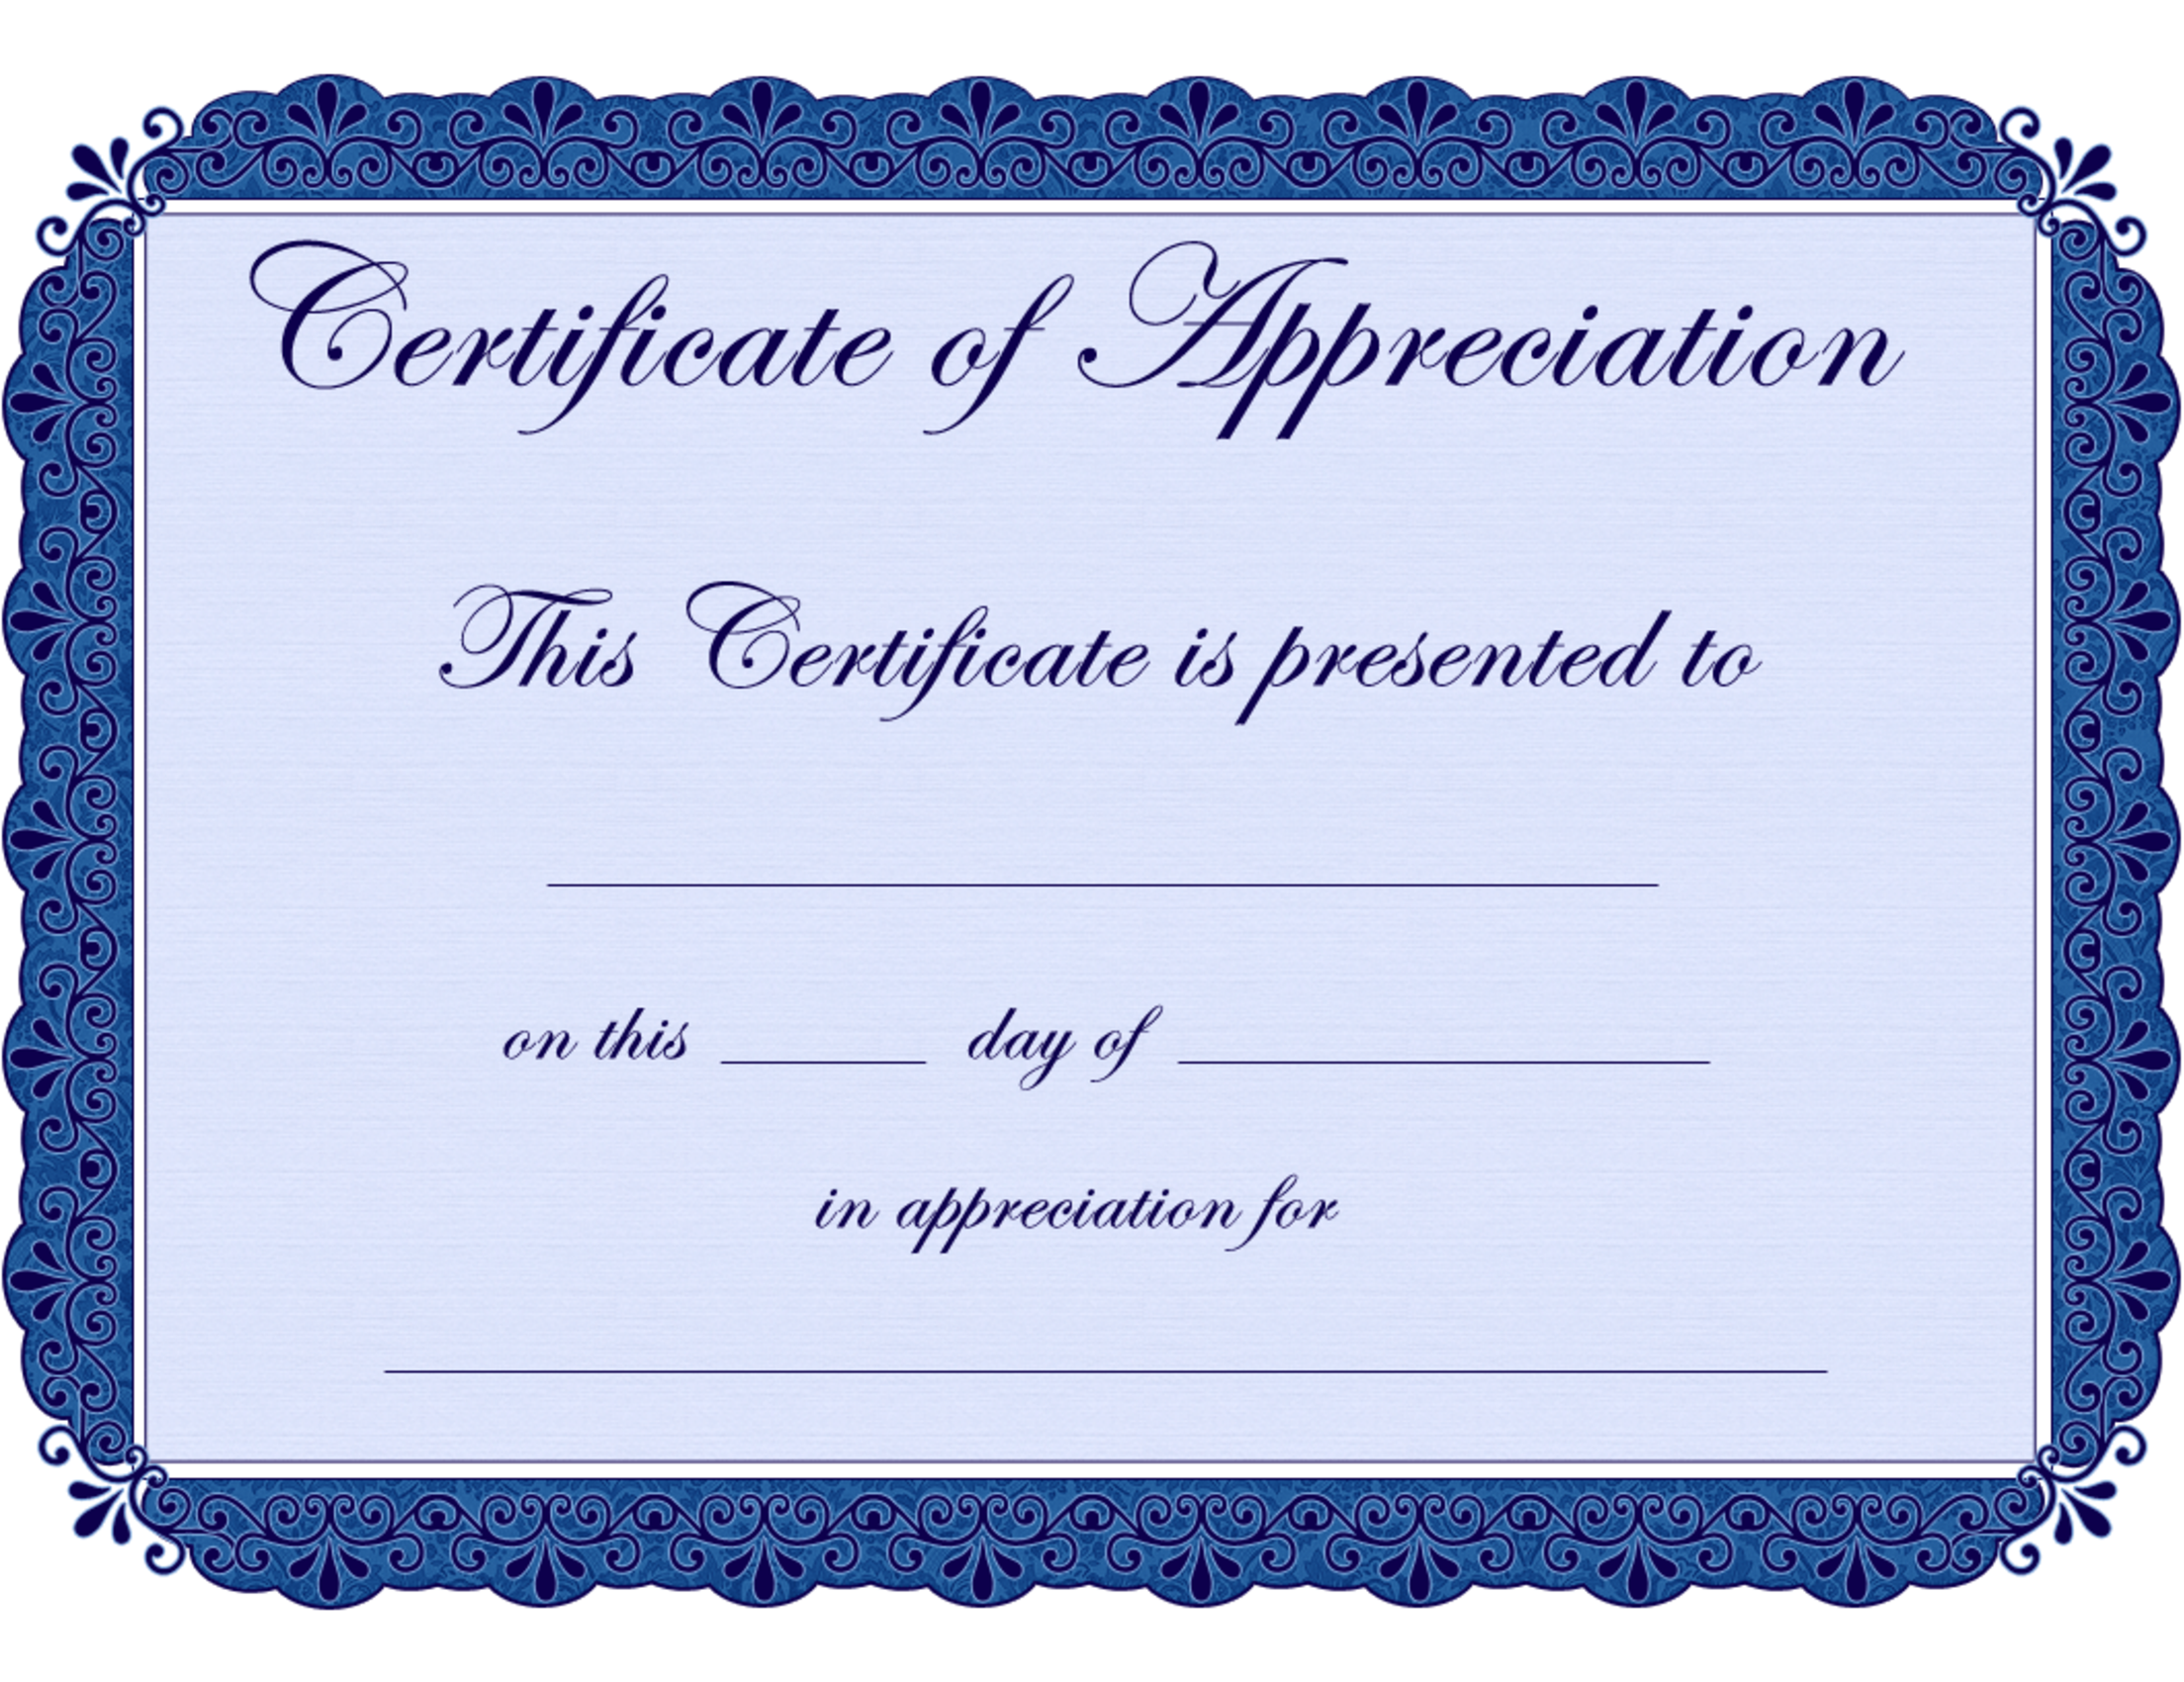 Free printable certificates certificate of appreciation free printable certificates certificate of appreciation certificate free gift certificate templatefree xflitez Images